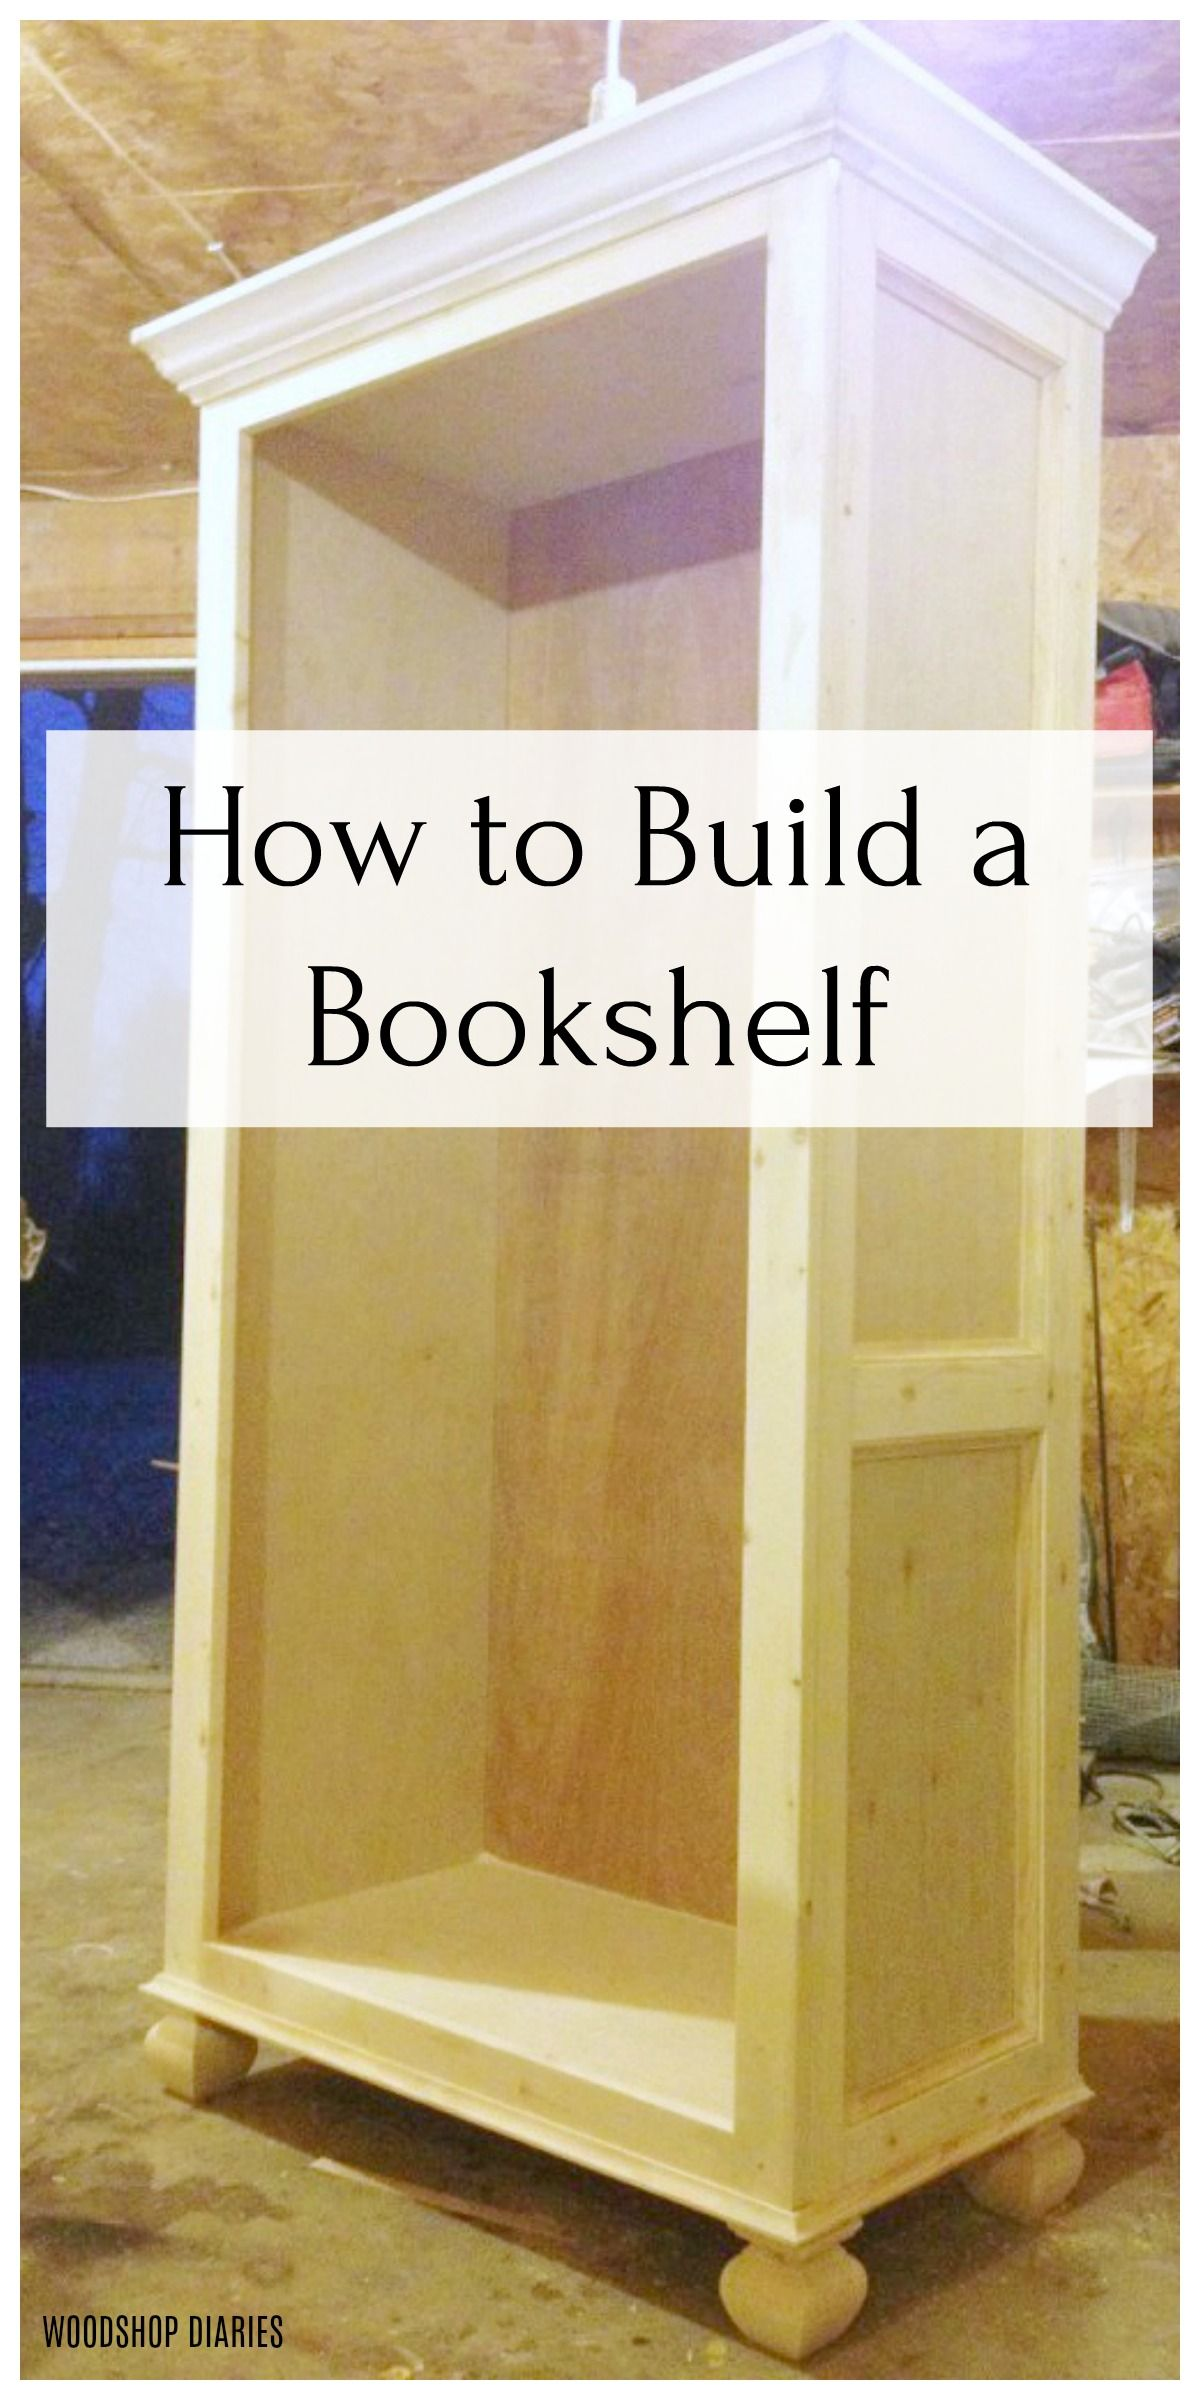 Build A Bookshelf 6 Steps To Build Your Own Freestanding Bookshelf In 2020 Woodworking Plans Diy Woodworking Plans Shelves Contemporary Woodworking Plans